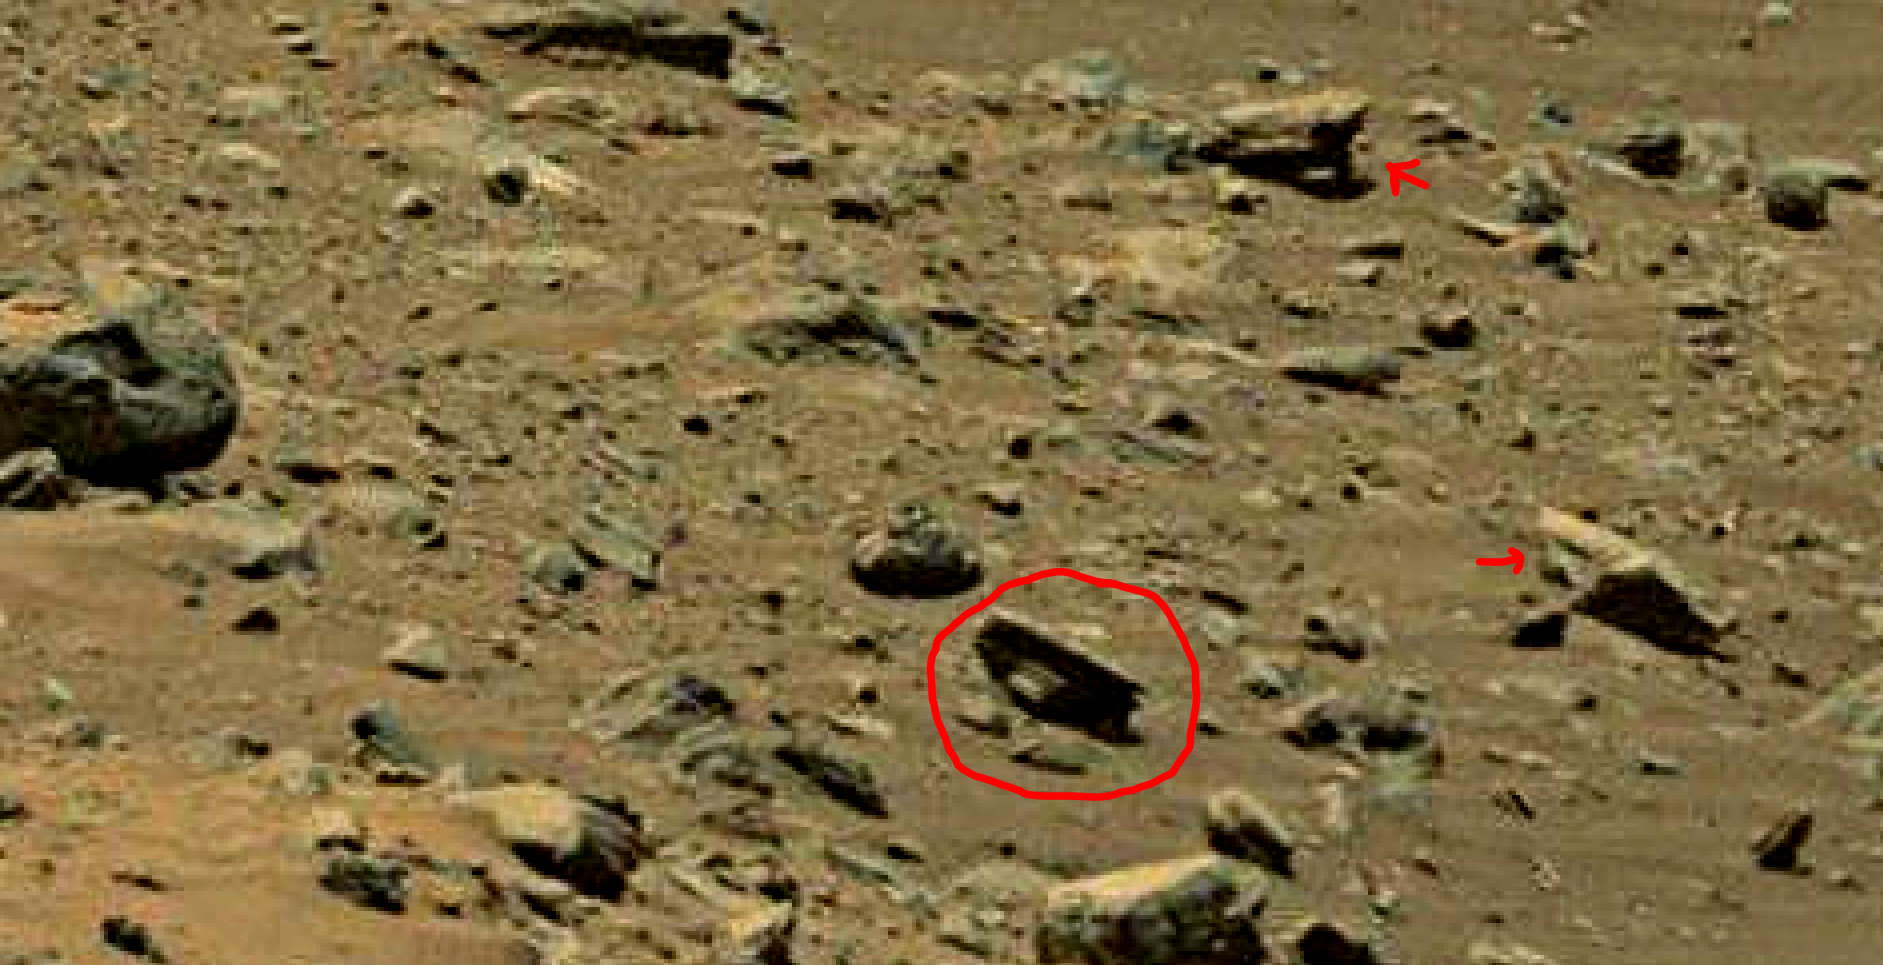 mars sol 1402 anomaly artifacts 5 was life on mars